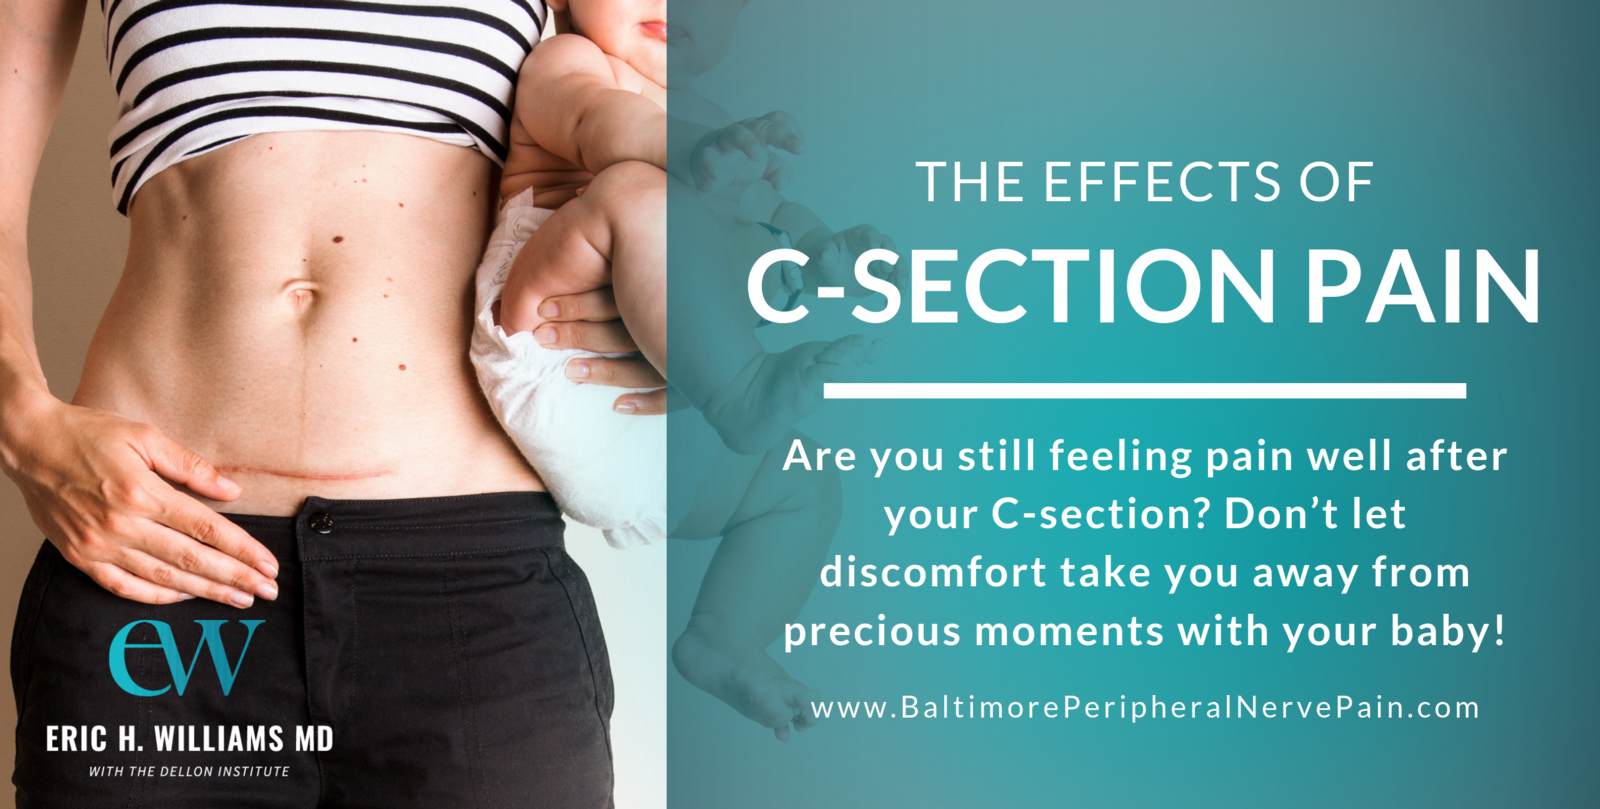 The Effects of C-Section Pain | Dr. Eric H. Williams